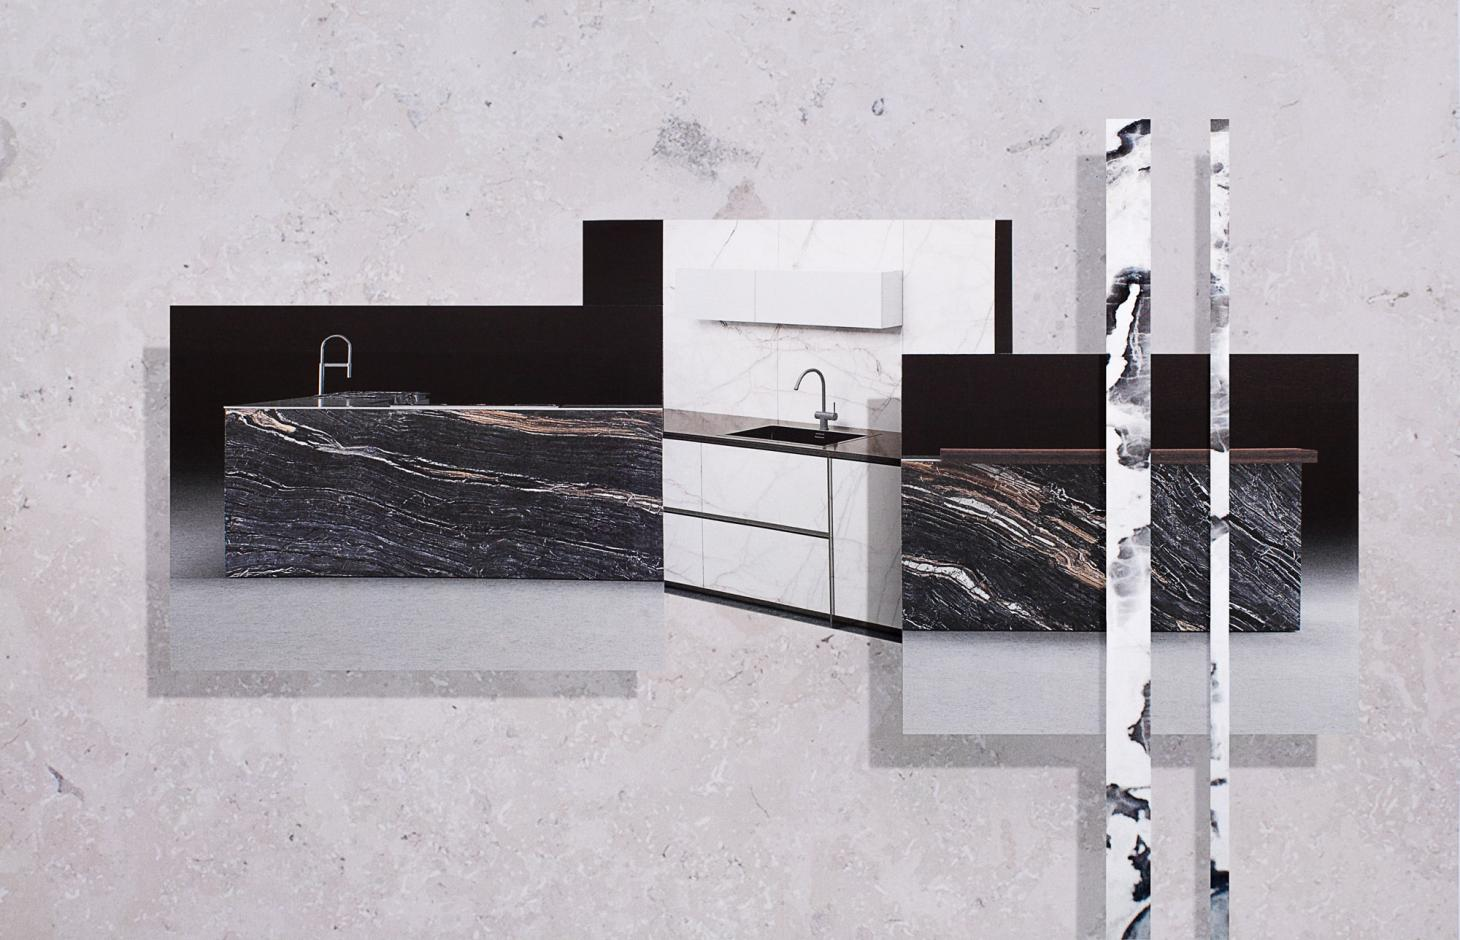 A collage of layered images showing the 'Isola' kitchen by Rossana, featuring different kinds of stone and marble